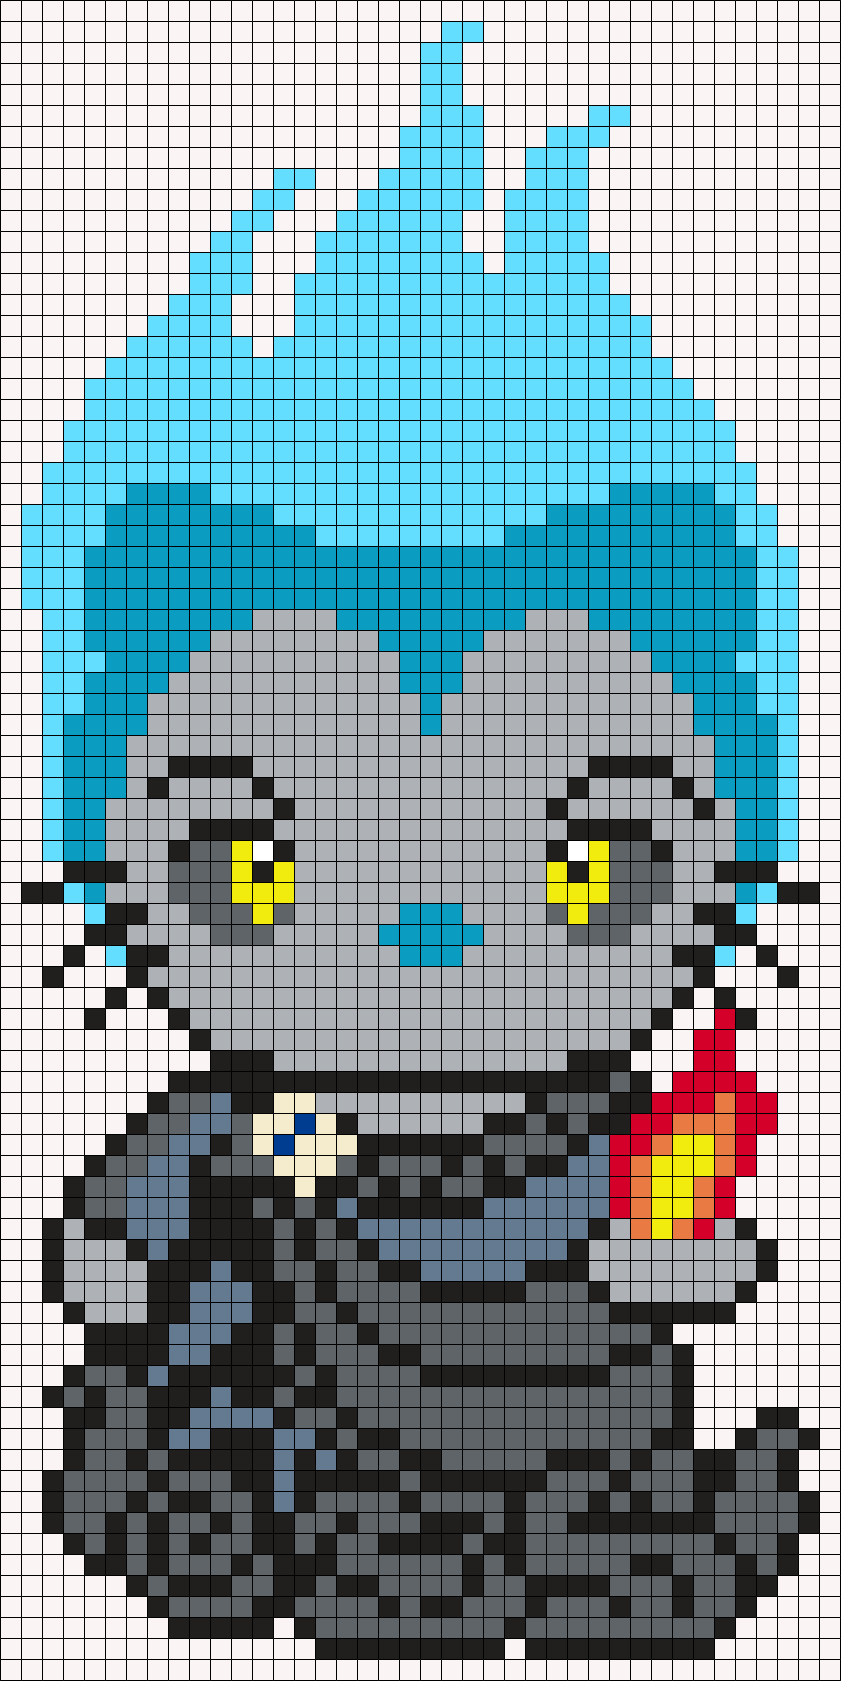 Hades From Hercules Hello Kitty Sq